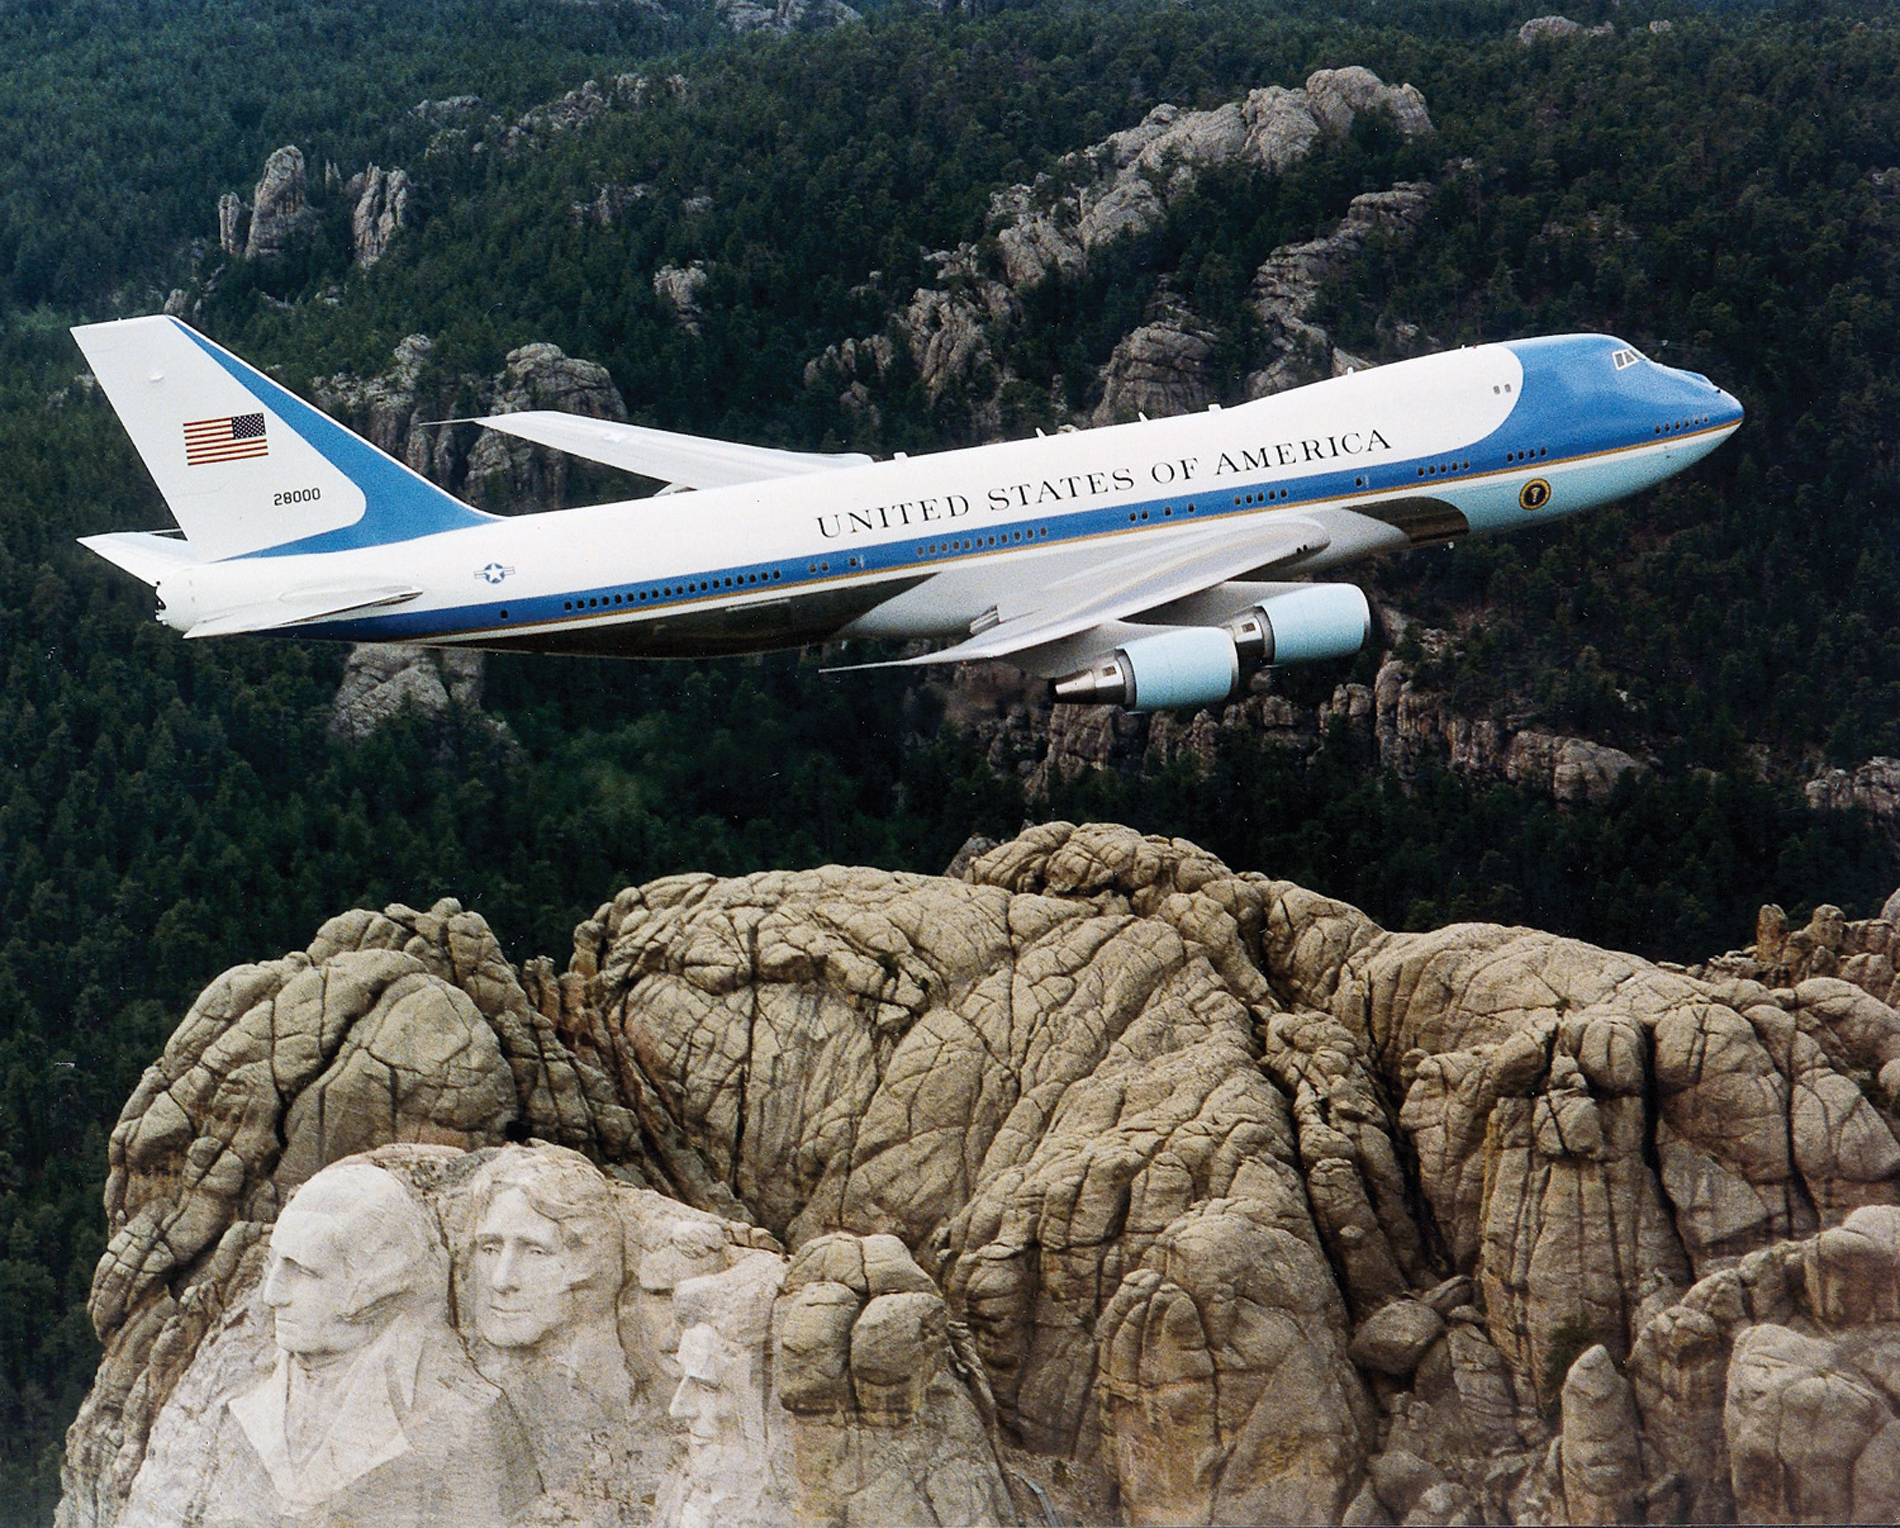 File:Air Force One over Mt. Rushmore.jpg